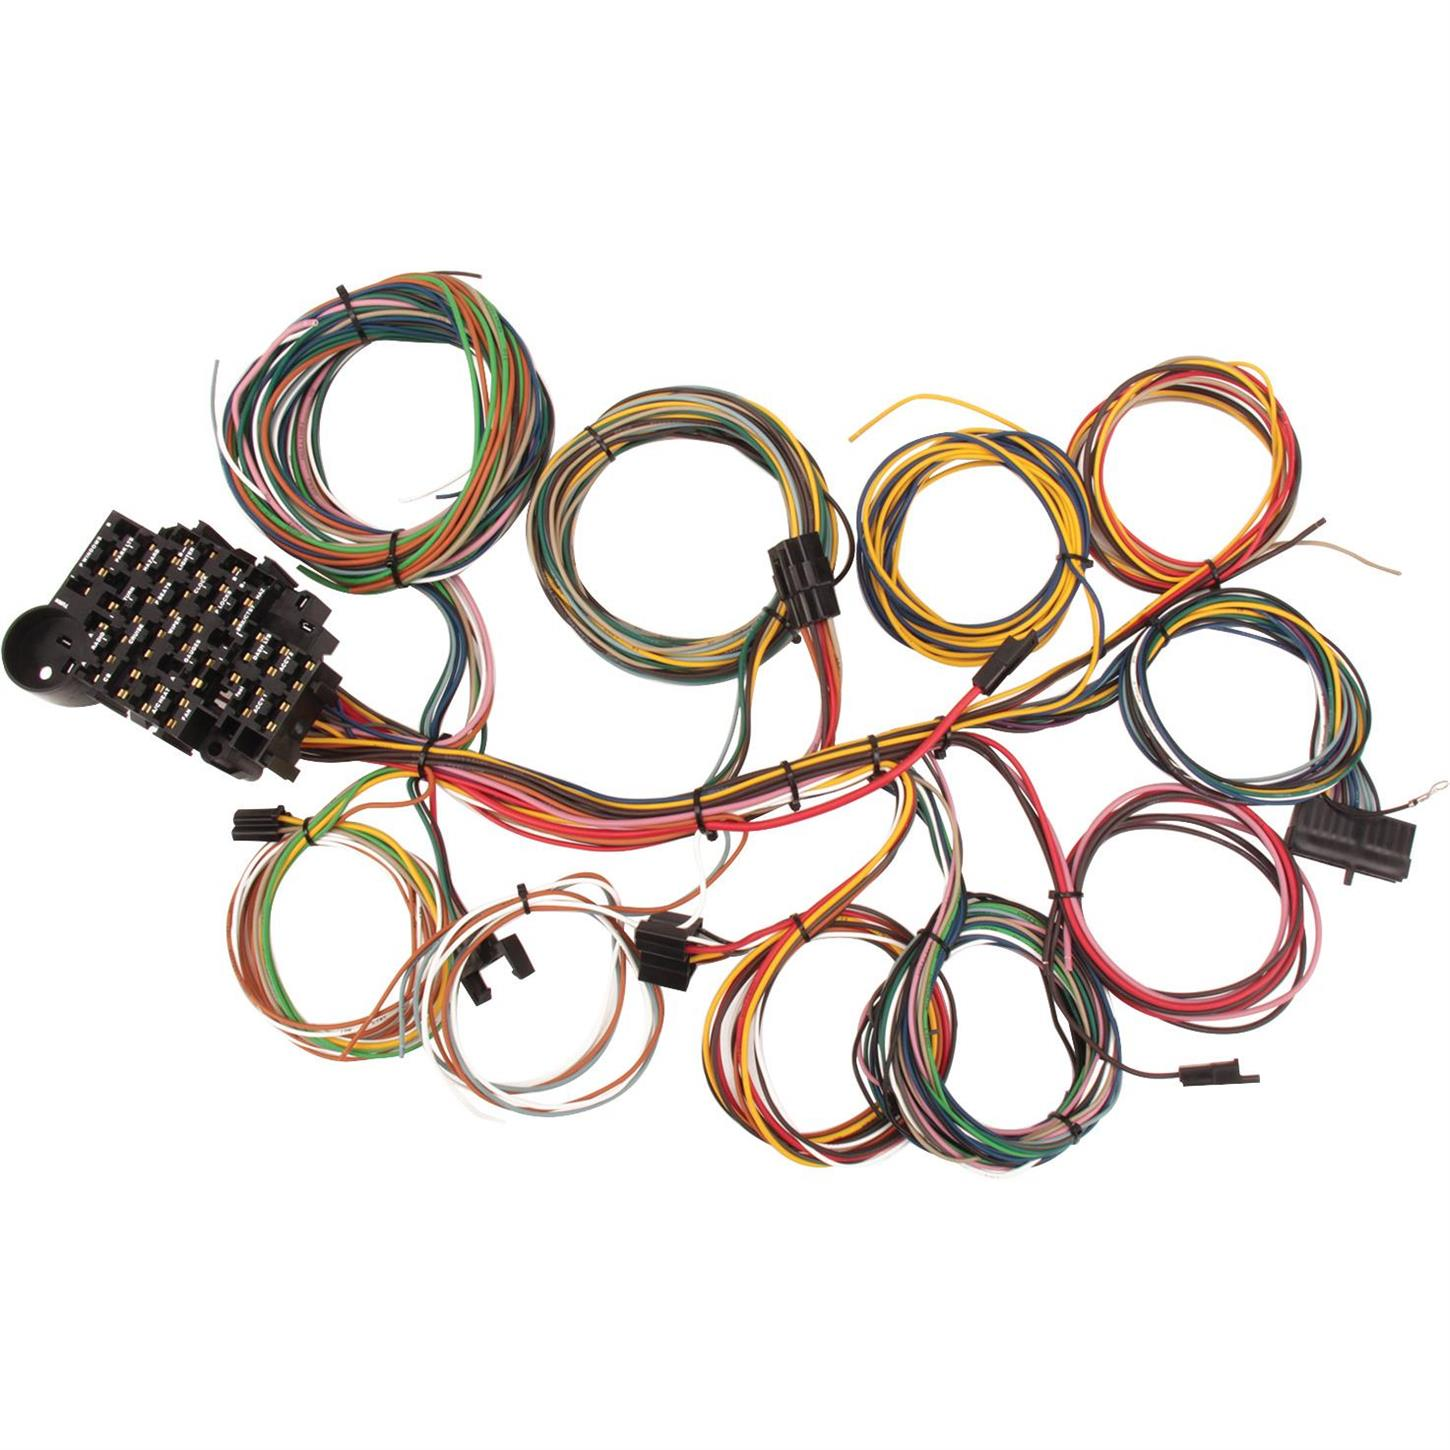 91064022_L1450_4a5a9e43 cdd2 4b2c 9c68 457f296054bd selecting a wiring harness for your street rod  at eliteediting.co